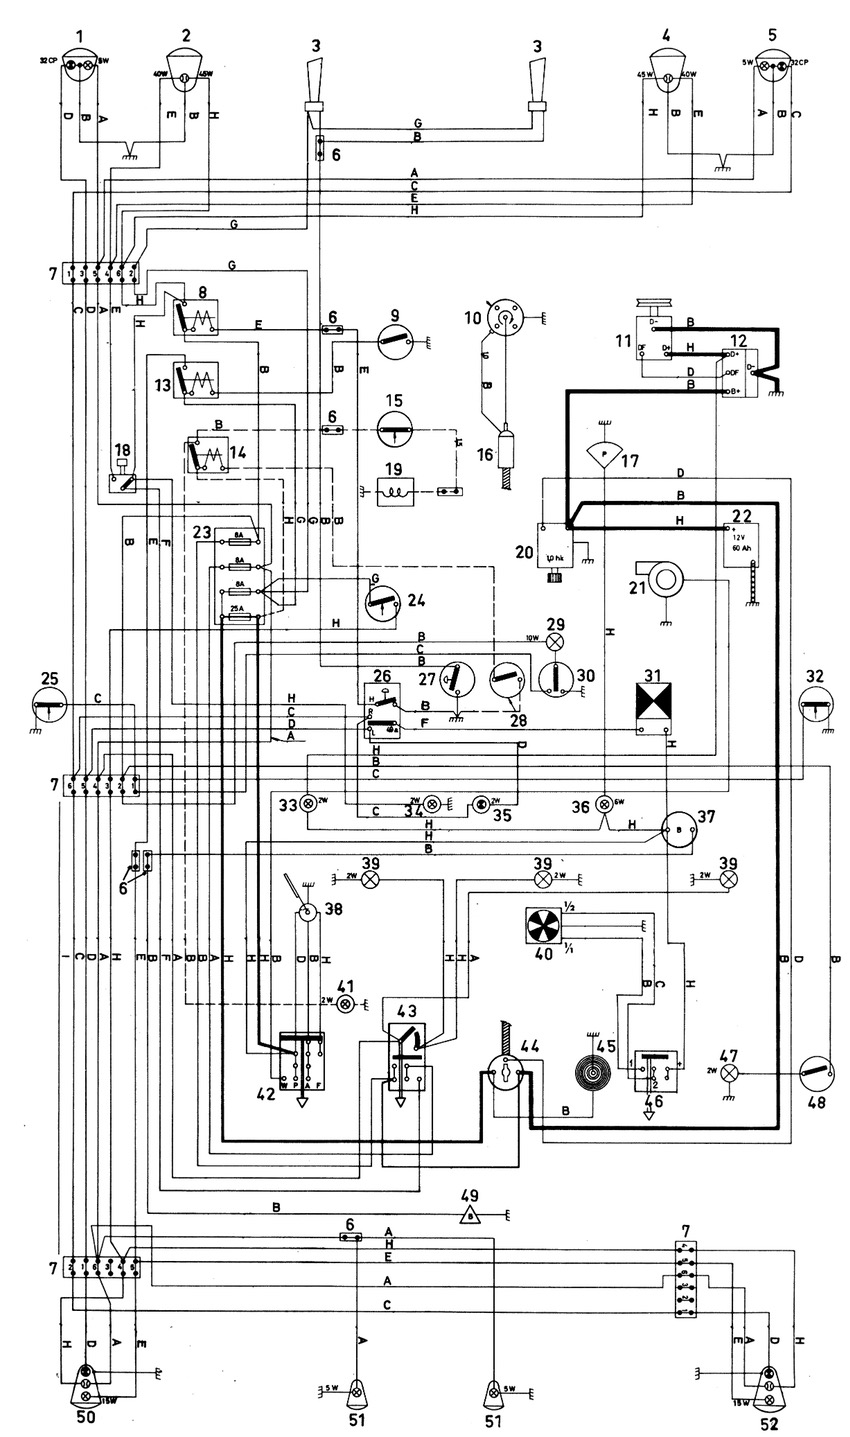 Electrical drawing at getdrawings free for personal use